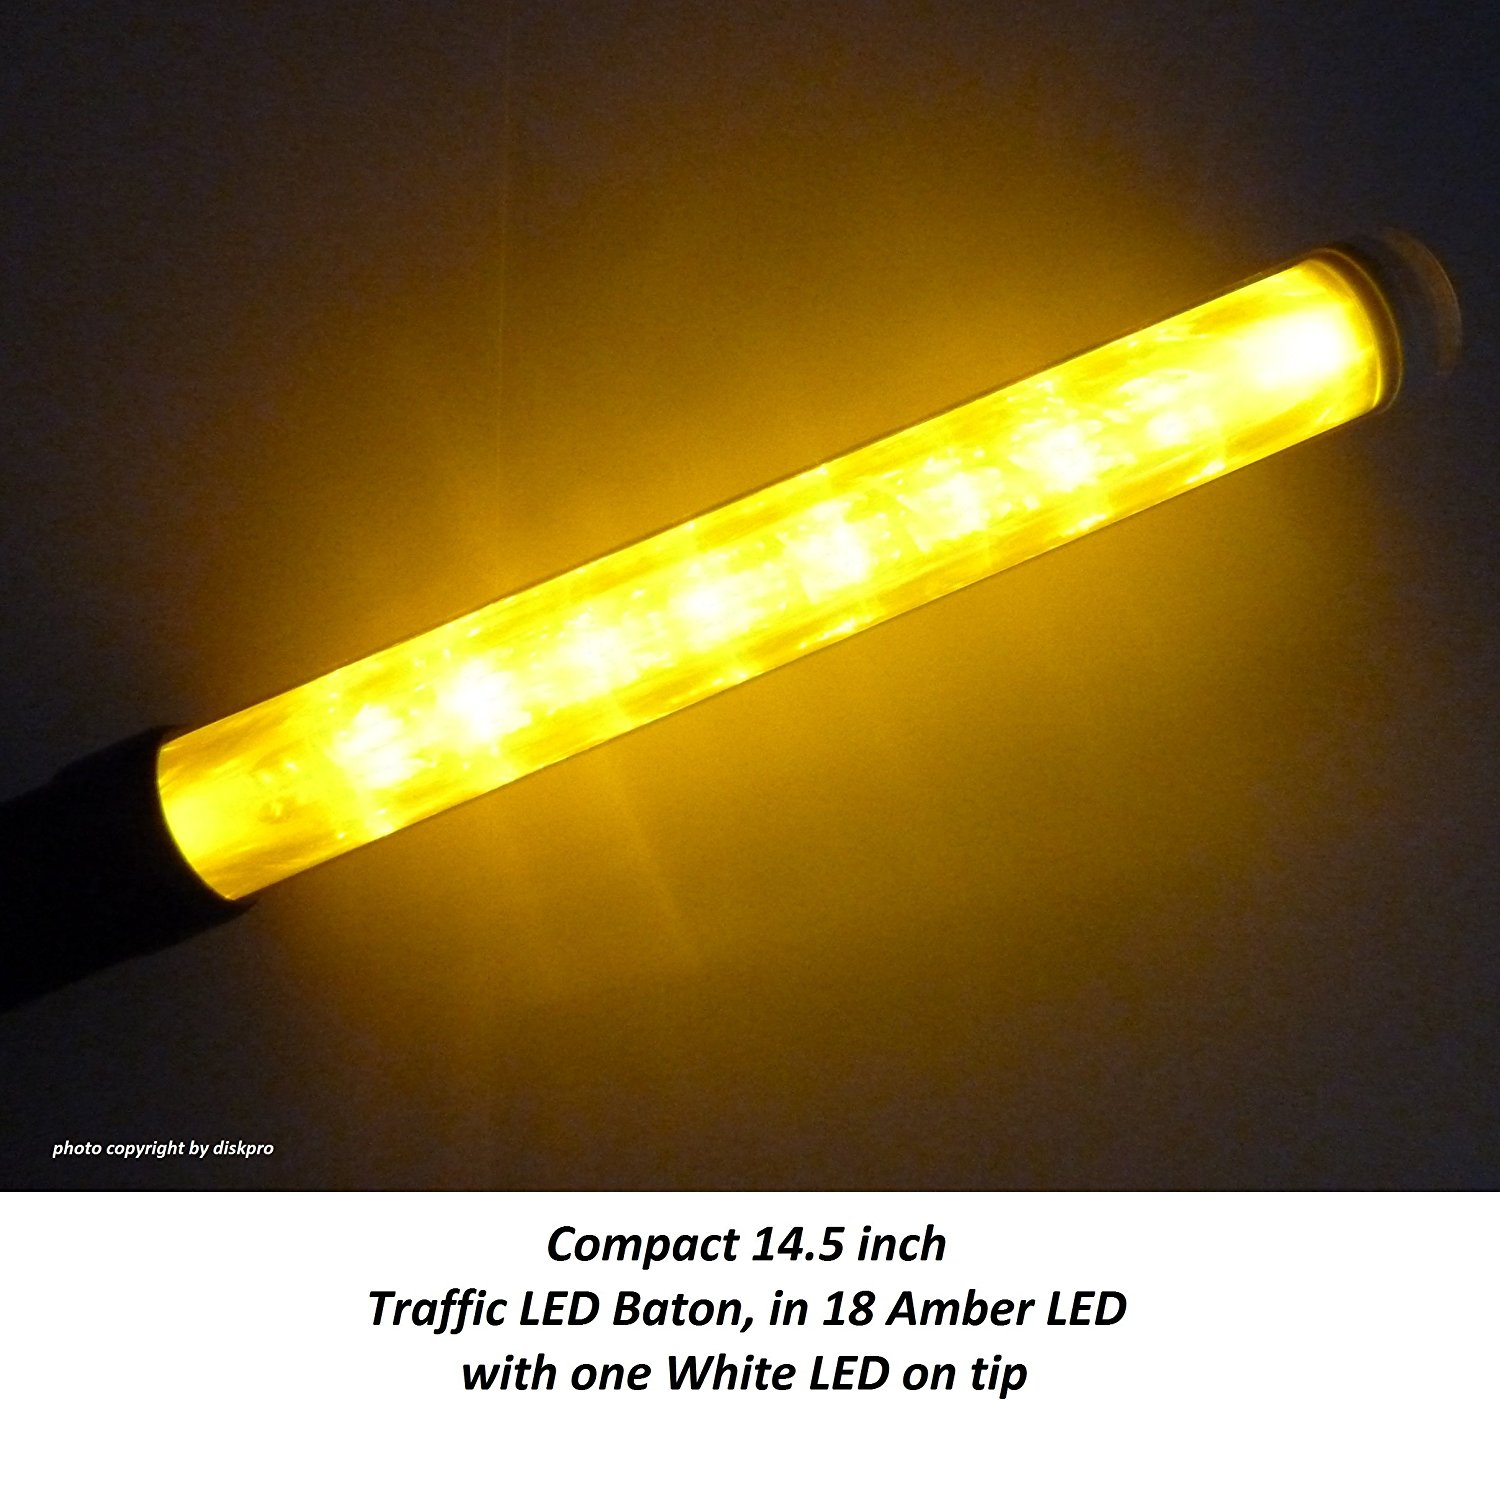 14.5 inch Amber LED Traffic Safety Wand Flashlight. Featured 18 Amber LED with 2 flashing modes (Blinking & Steady-glow) plus 1 White LED on tip, using 3 AA-size batteries.